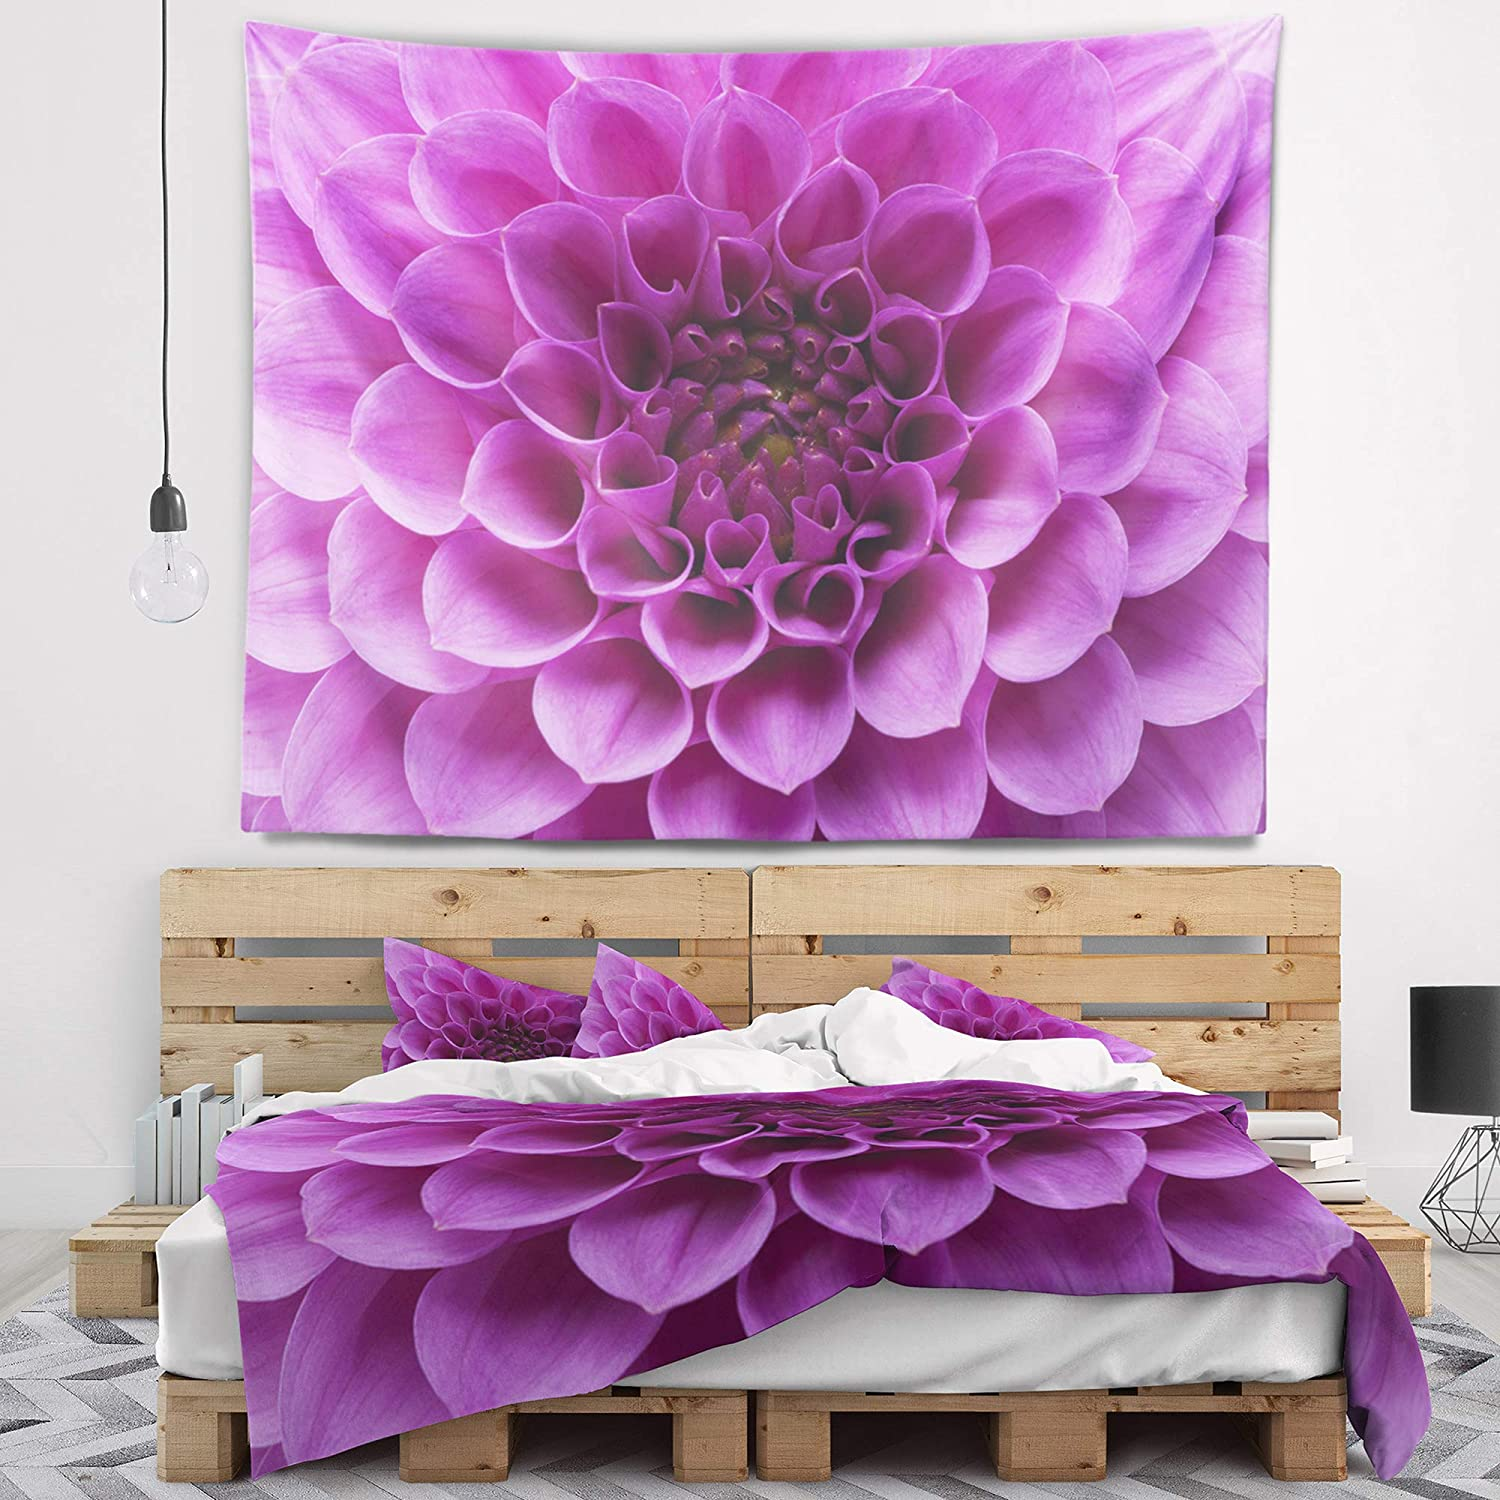 39 in Created On Lightweight Polyester Fabric Designart TAP12630-39-32  Large Light Purple Flower and Petals Floral Blanket D/écor Art for Home and Office Wall Tapestry Medium x 32 in